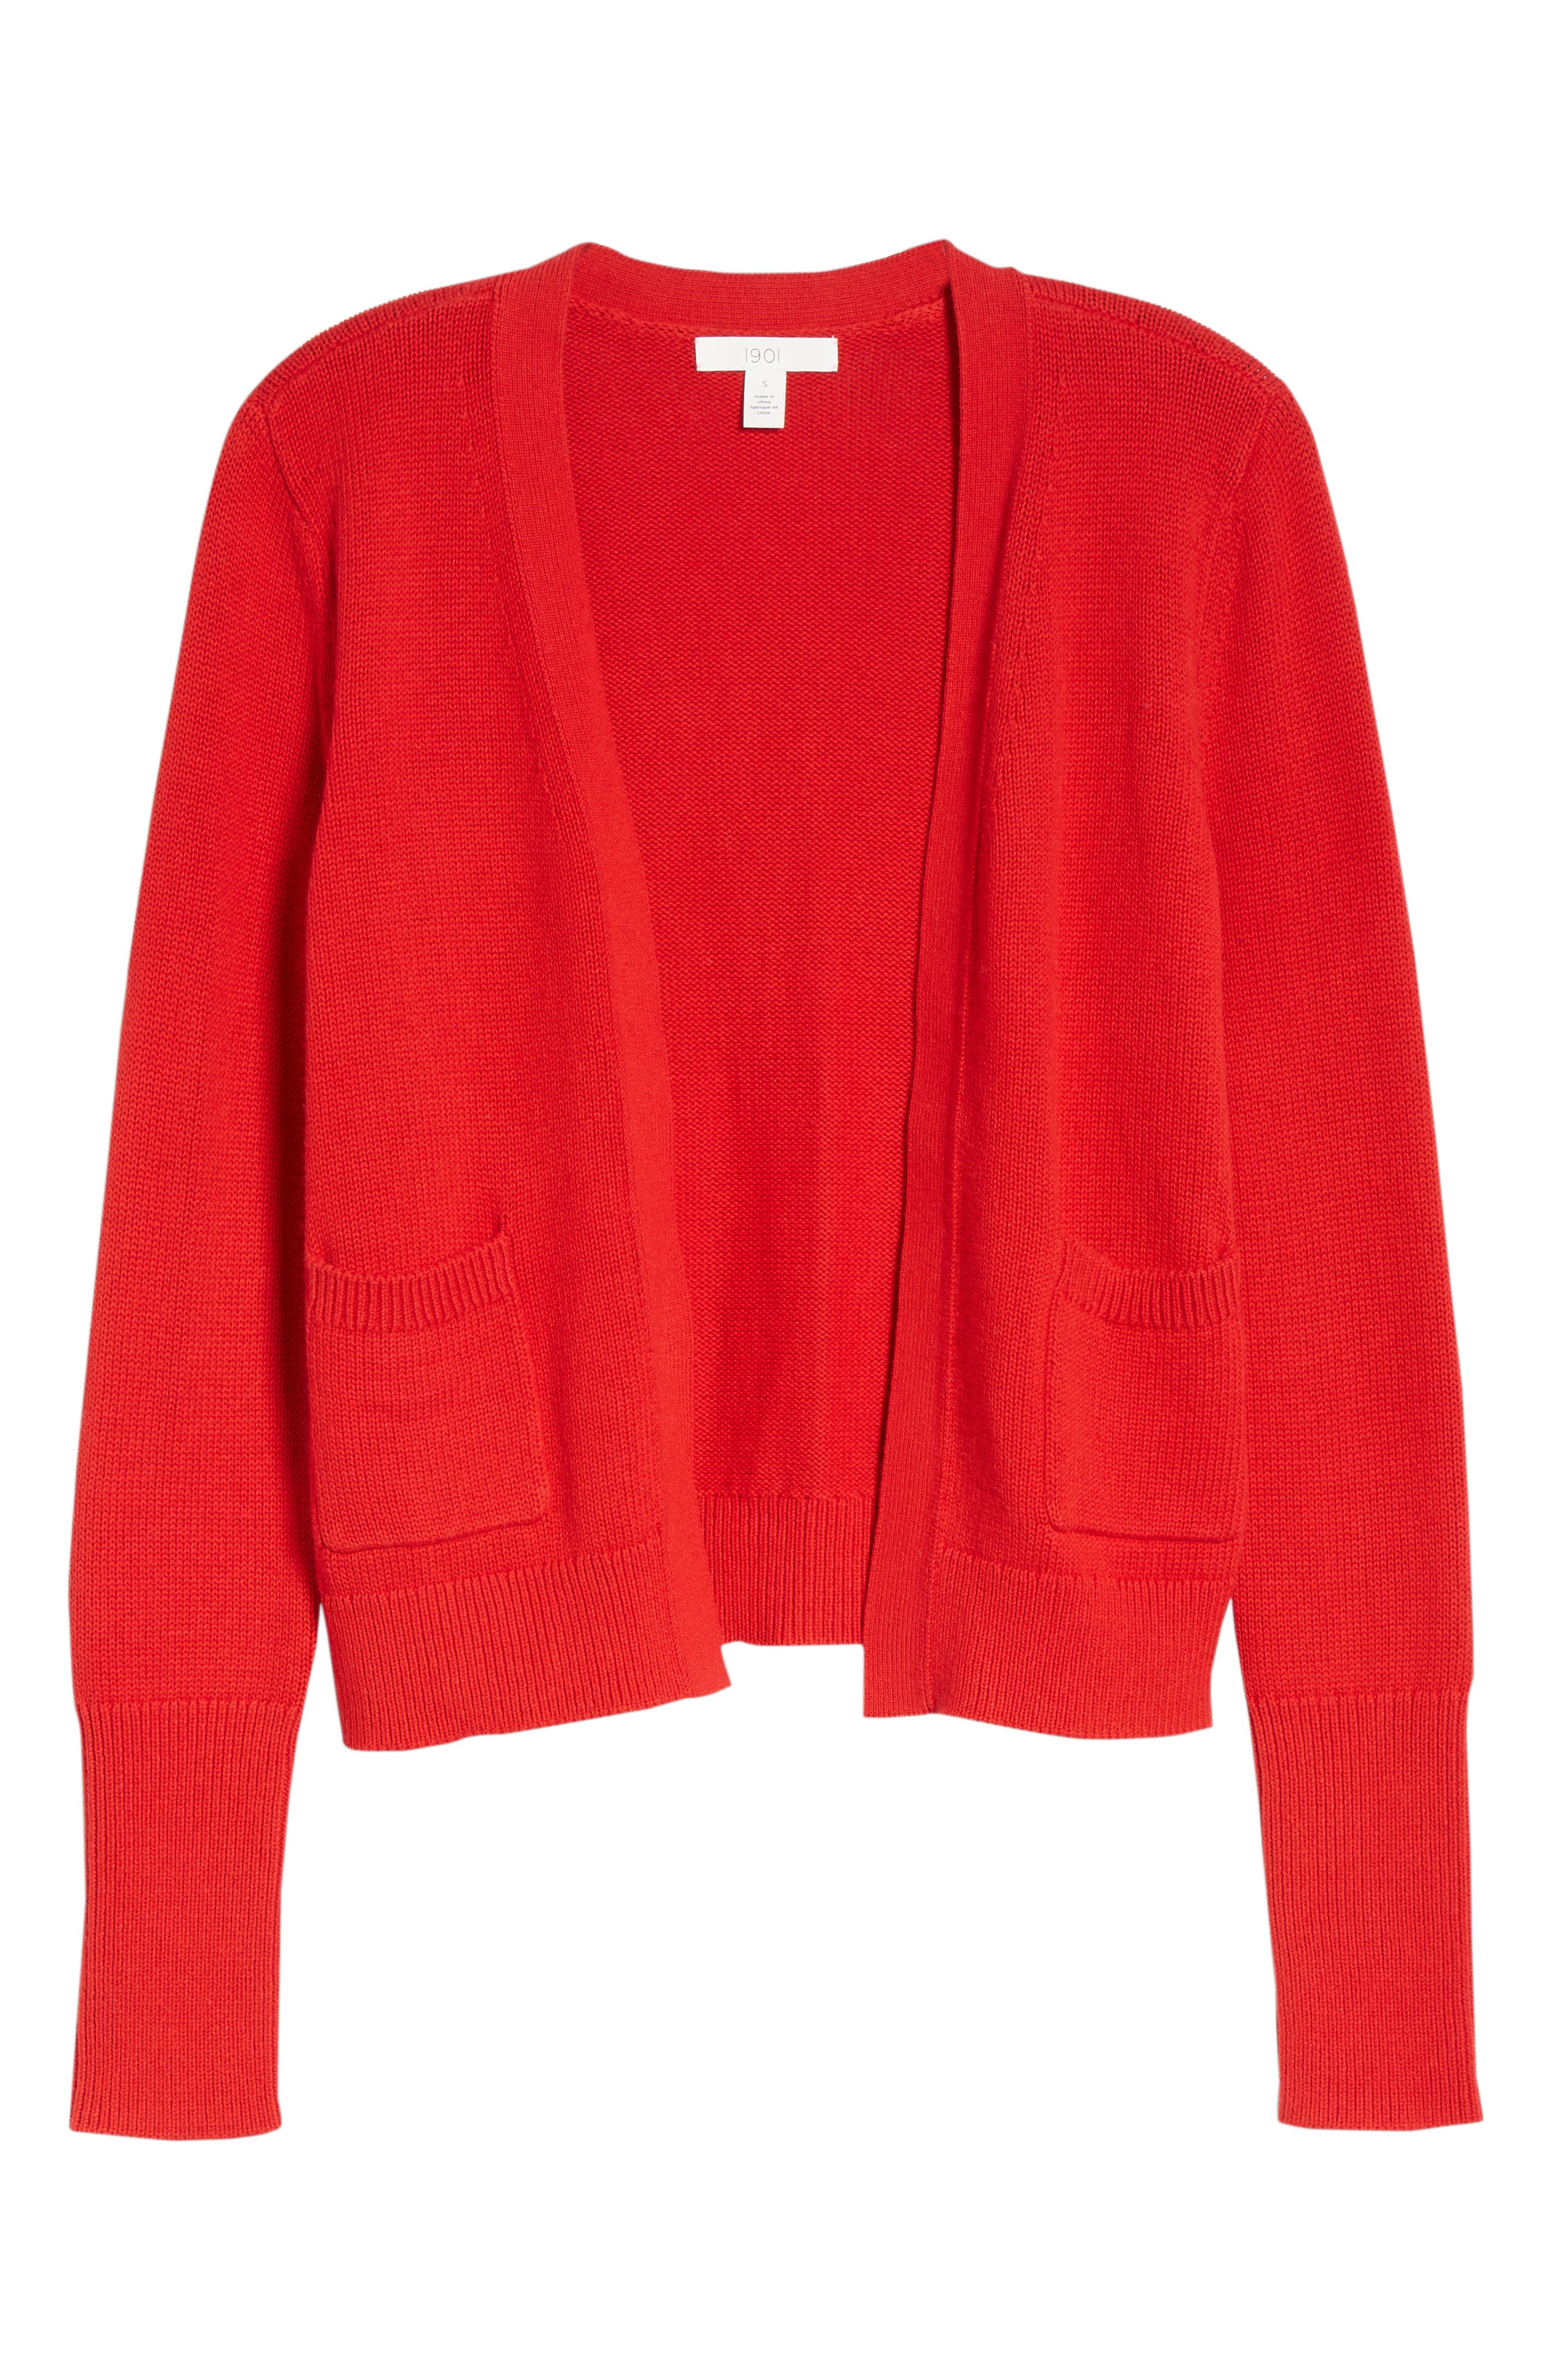 Cotton Cashmere Colorblock Cardigan,                             Alternate thumbnail 7, color,                             Red Chinoise